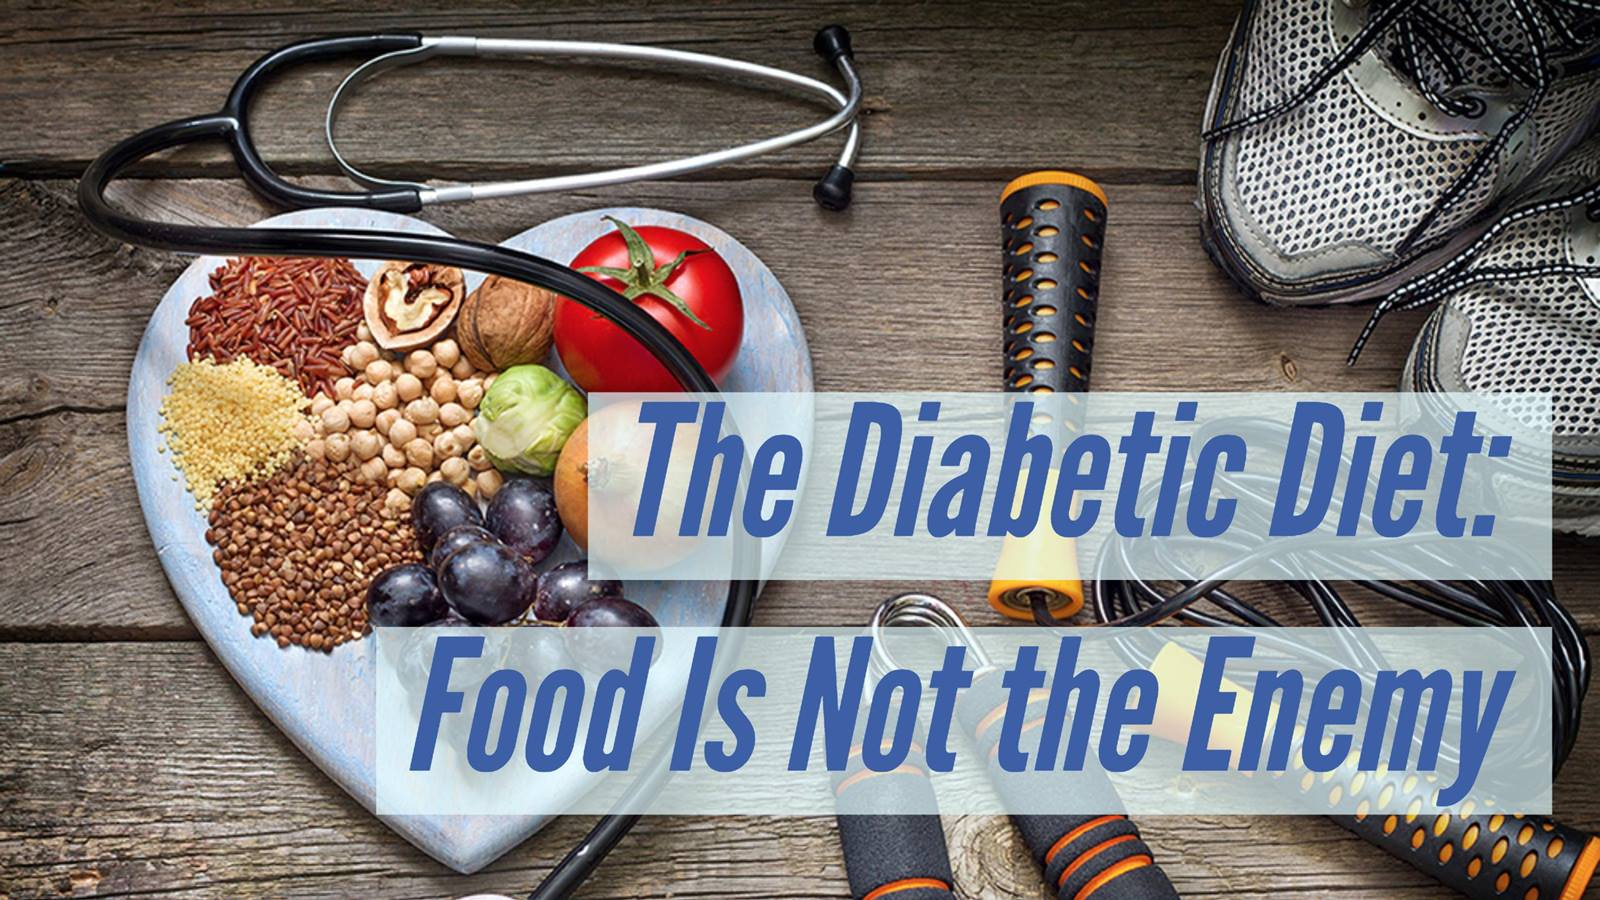 The Diabetic Diet Food Is Not The Enemy